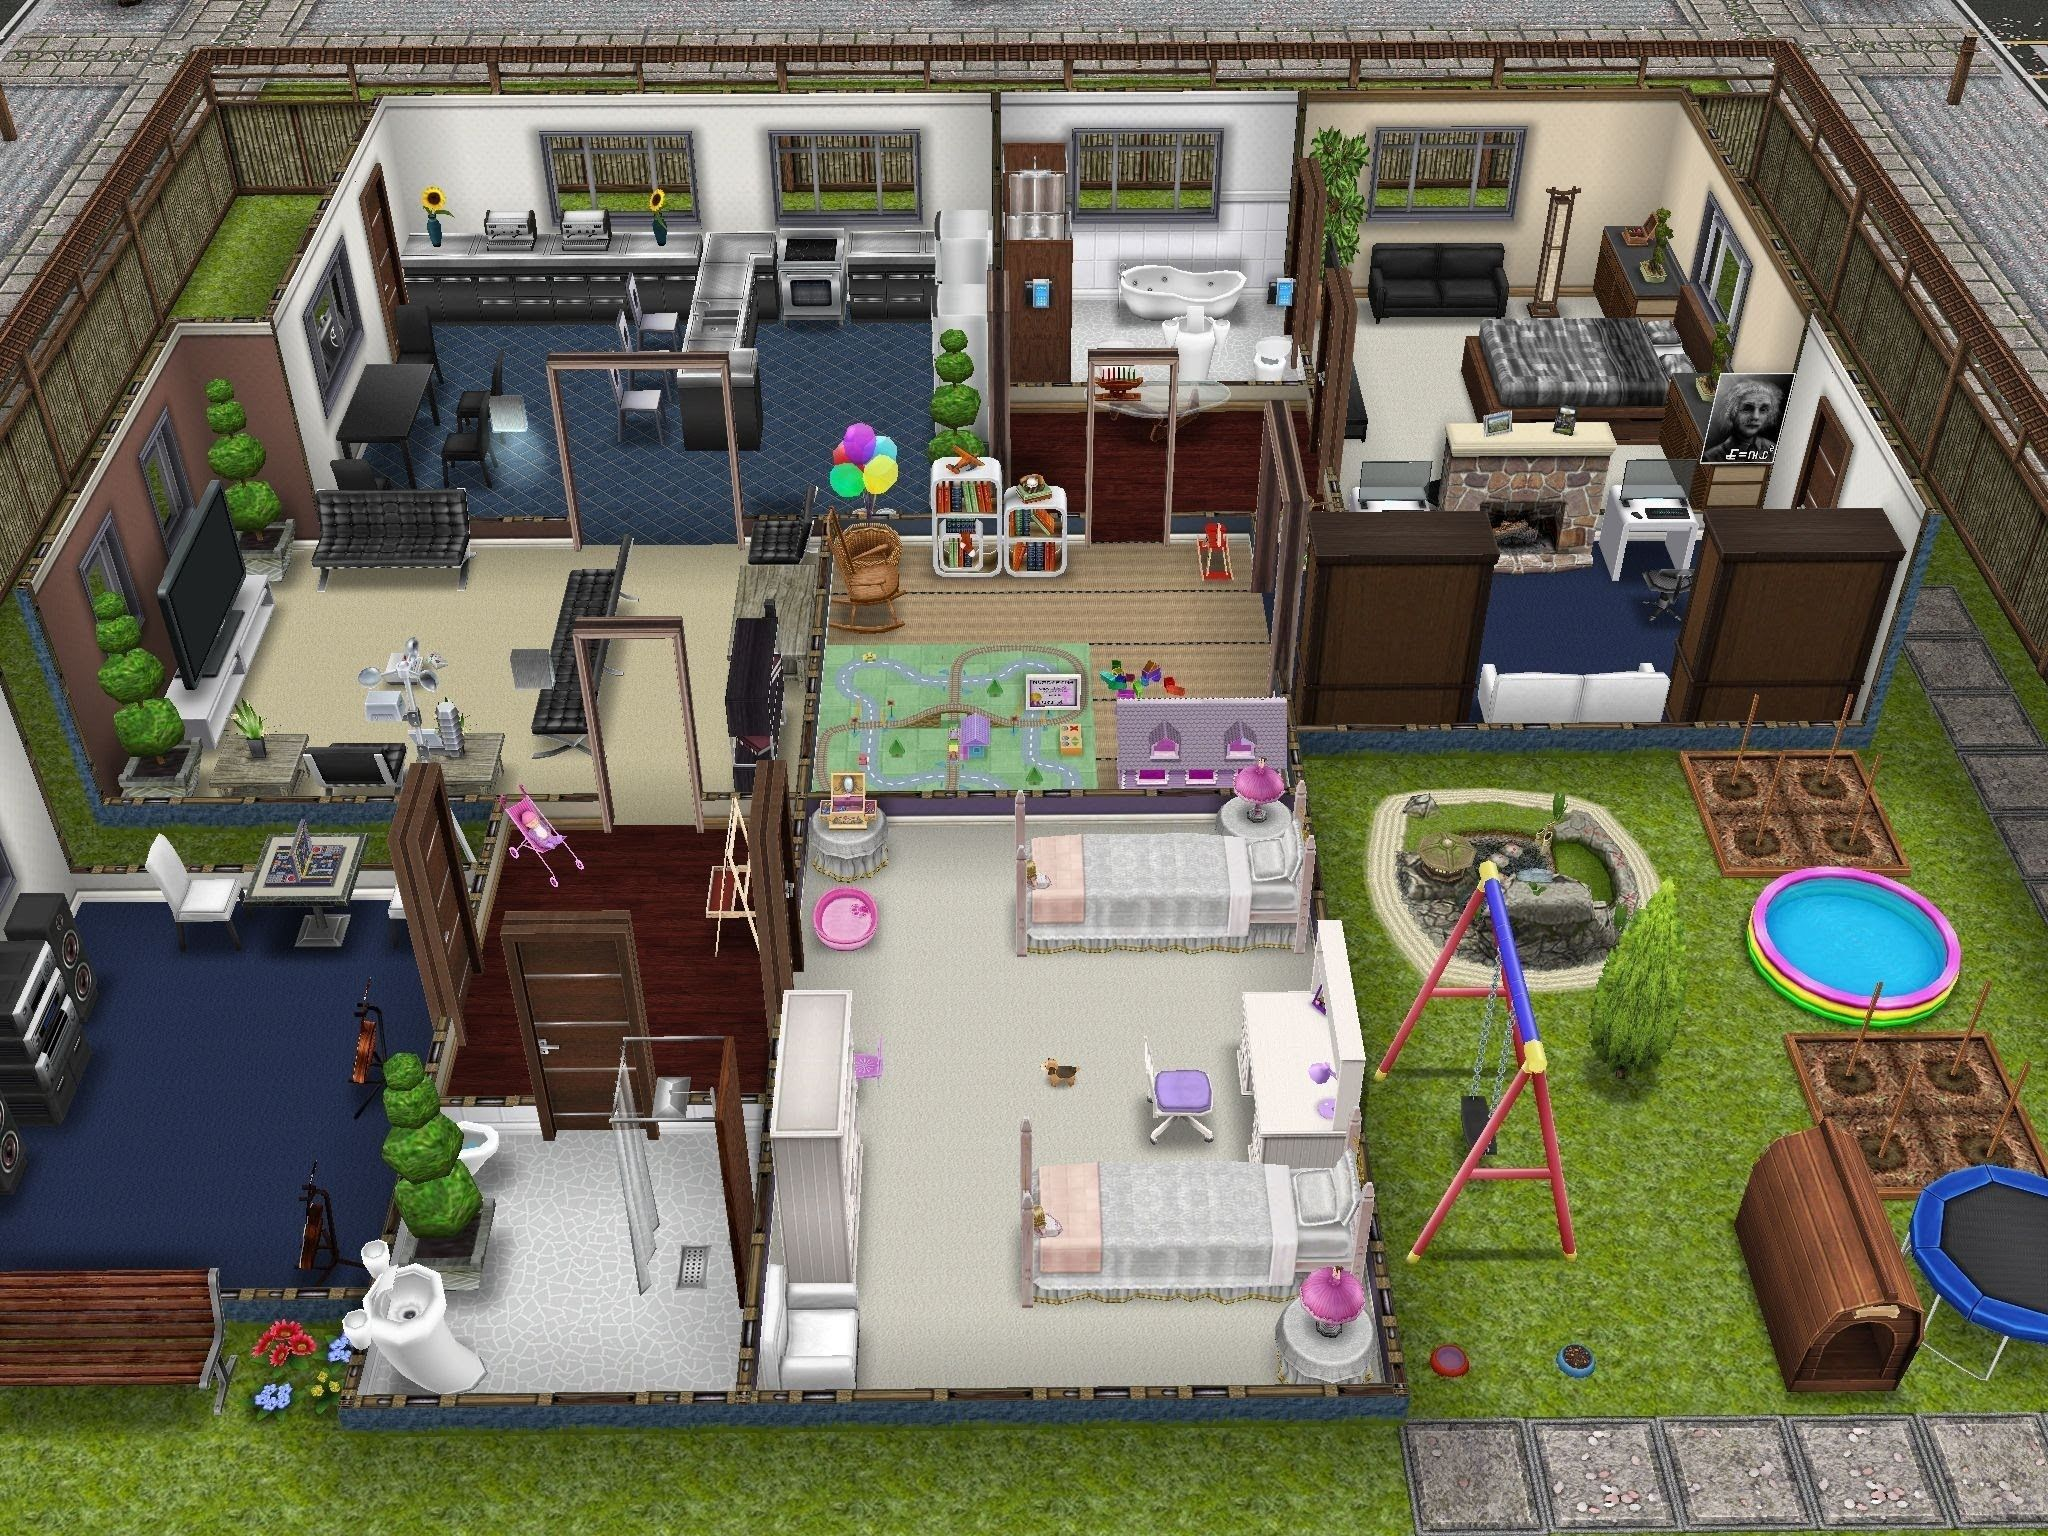 sims freeplay house ideas   Google Search. sims freeplay house ideas   Google Search   Sims freeplay